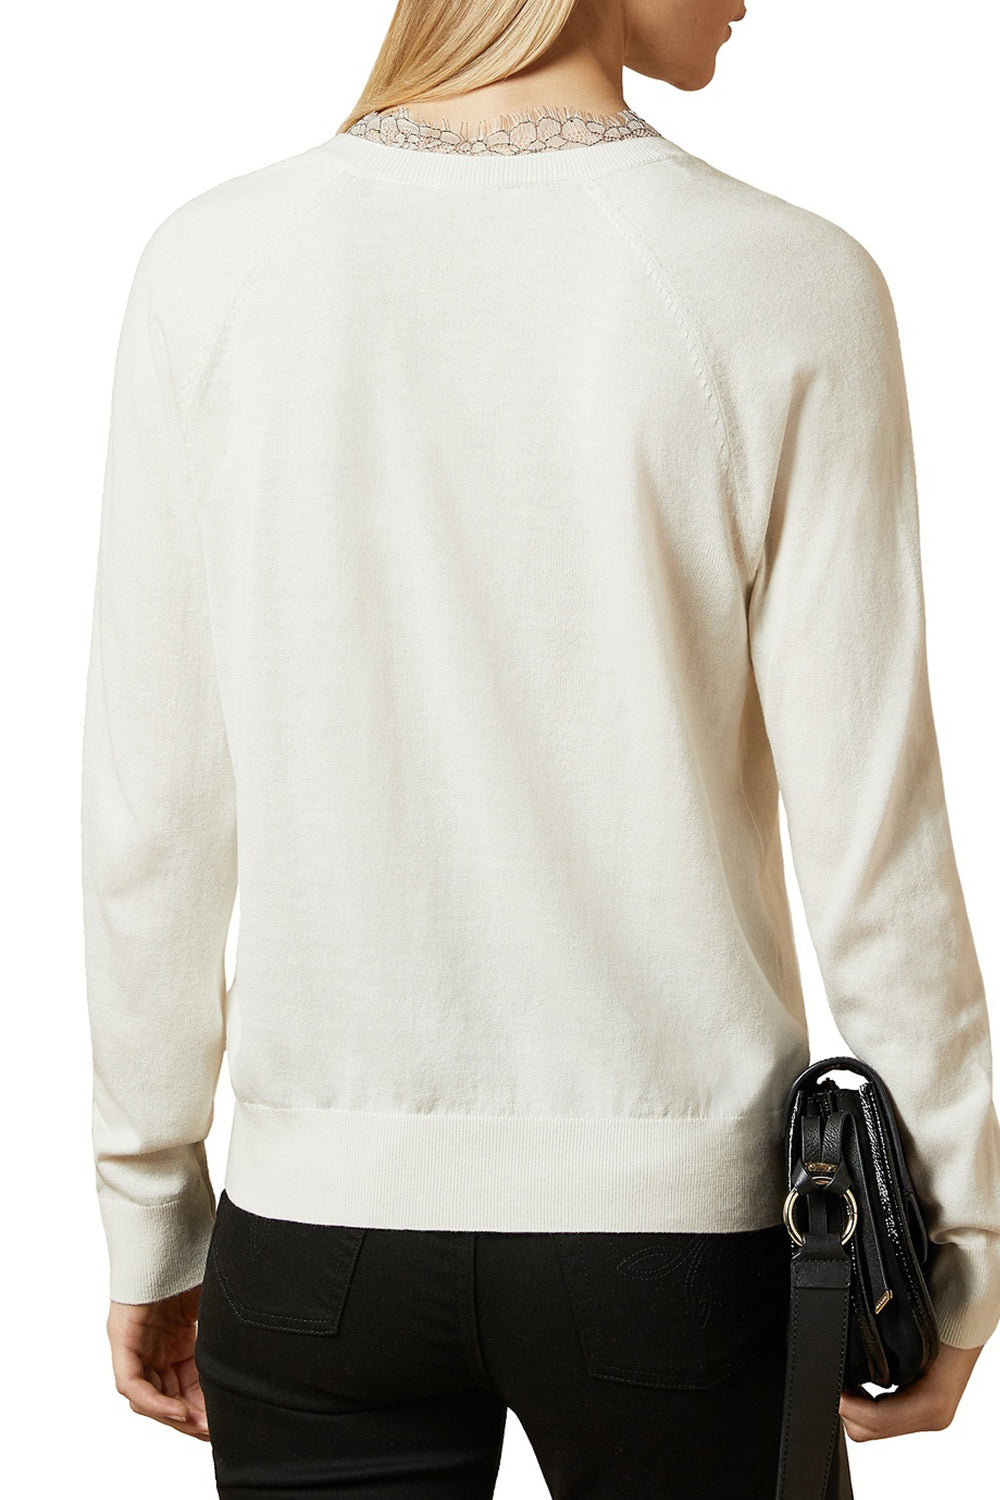 Ted Baker / Alyyiss Lace Insert V-Neck Jumper / Ivory